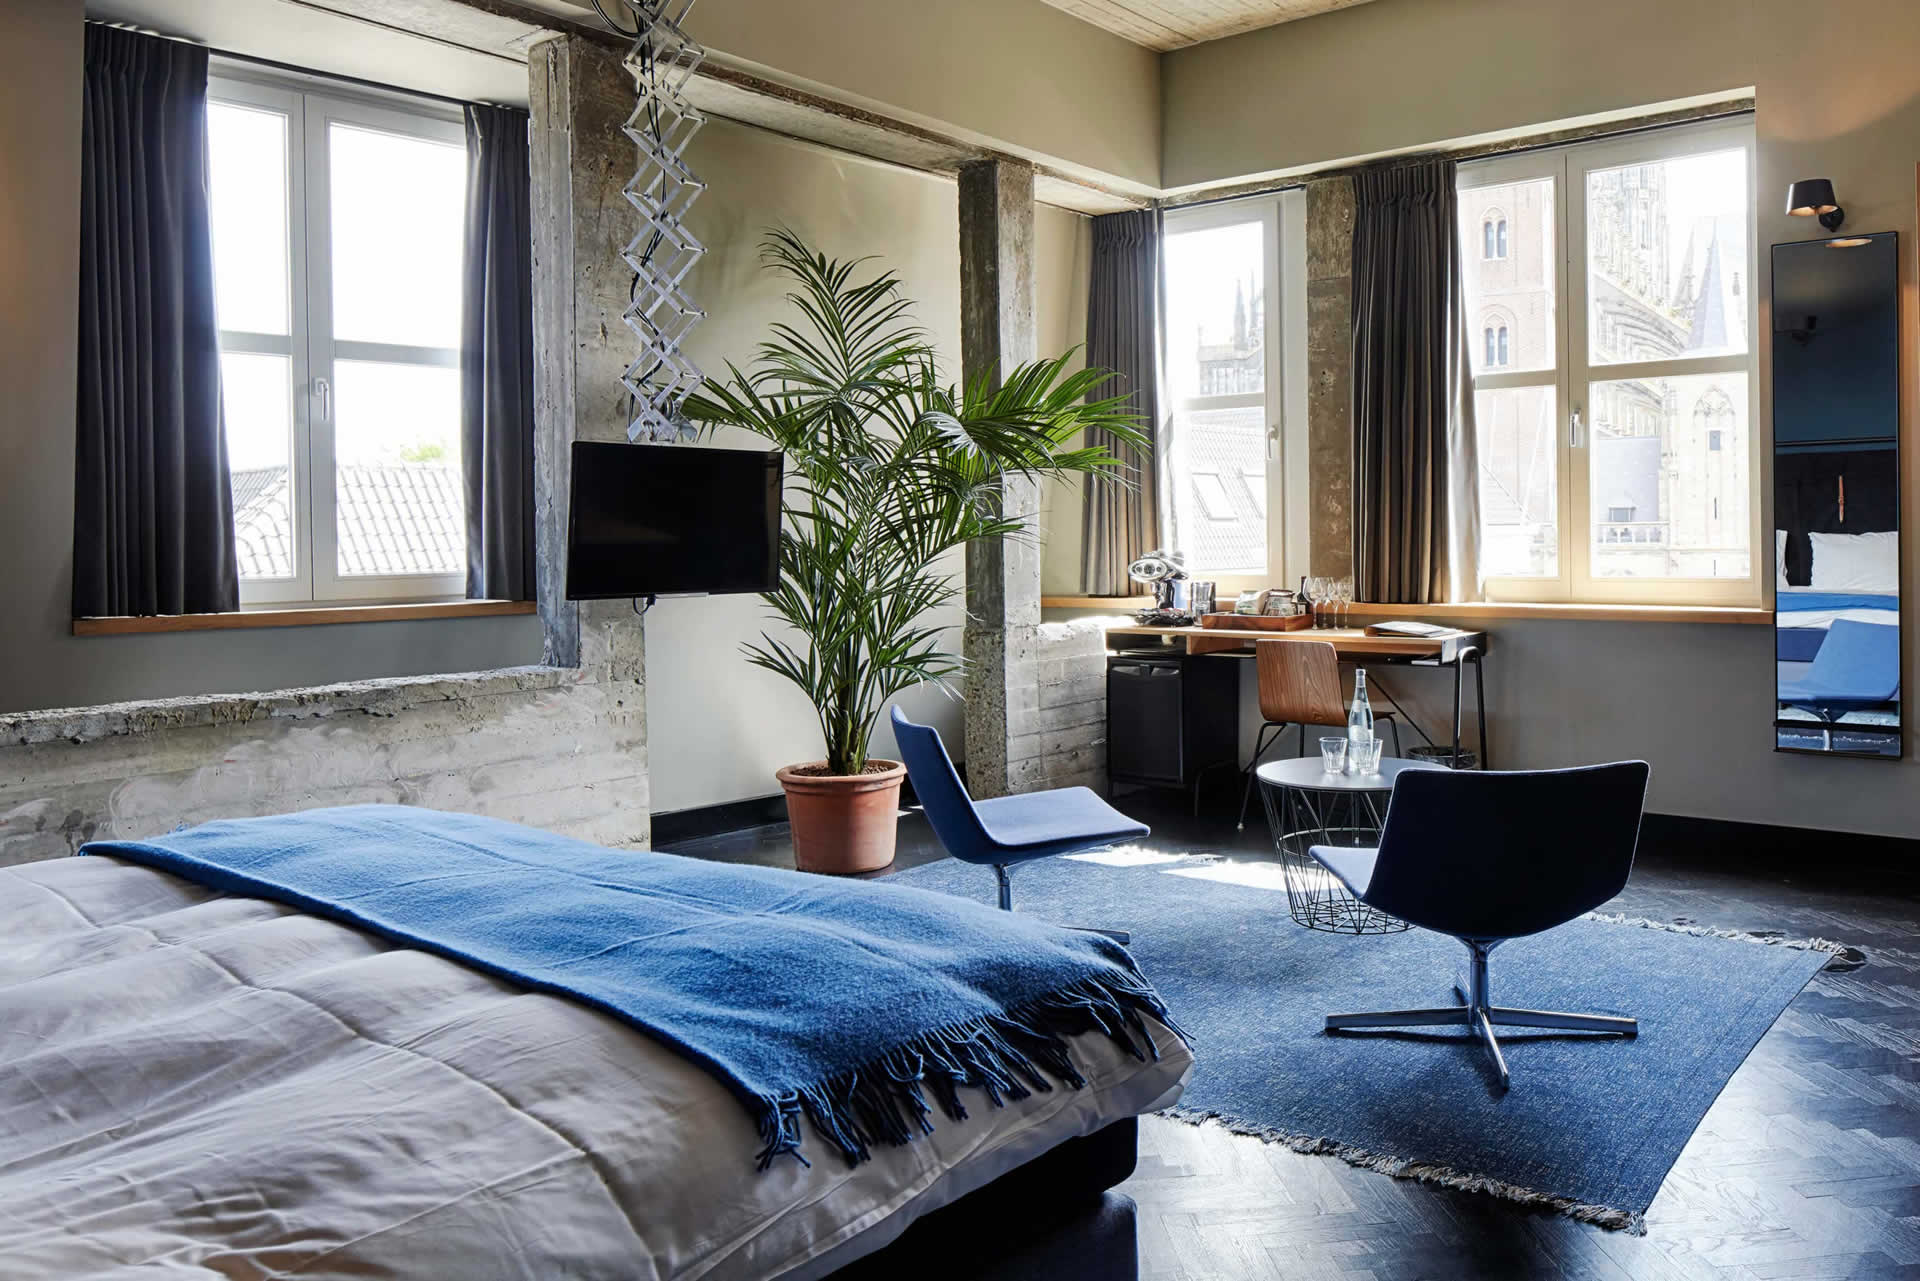 The duke boutique hotel in den bosch for The boutique hotel